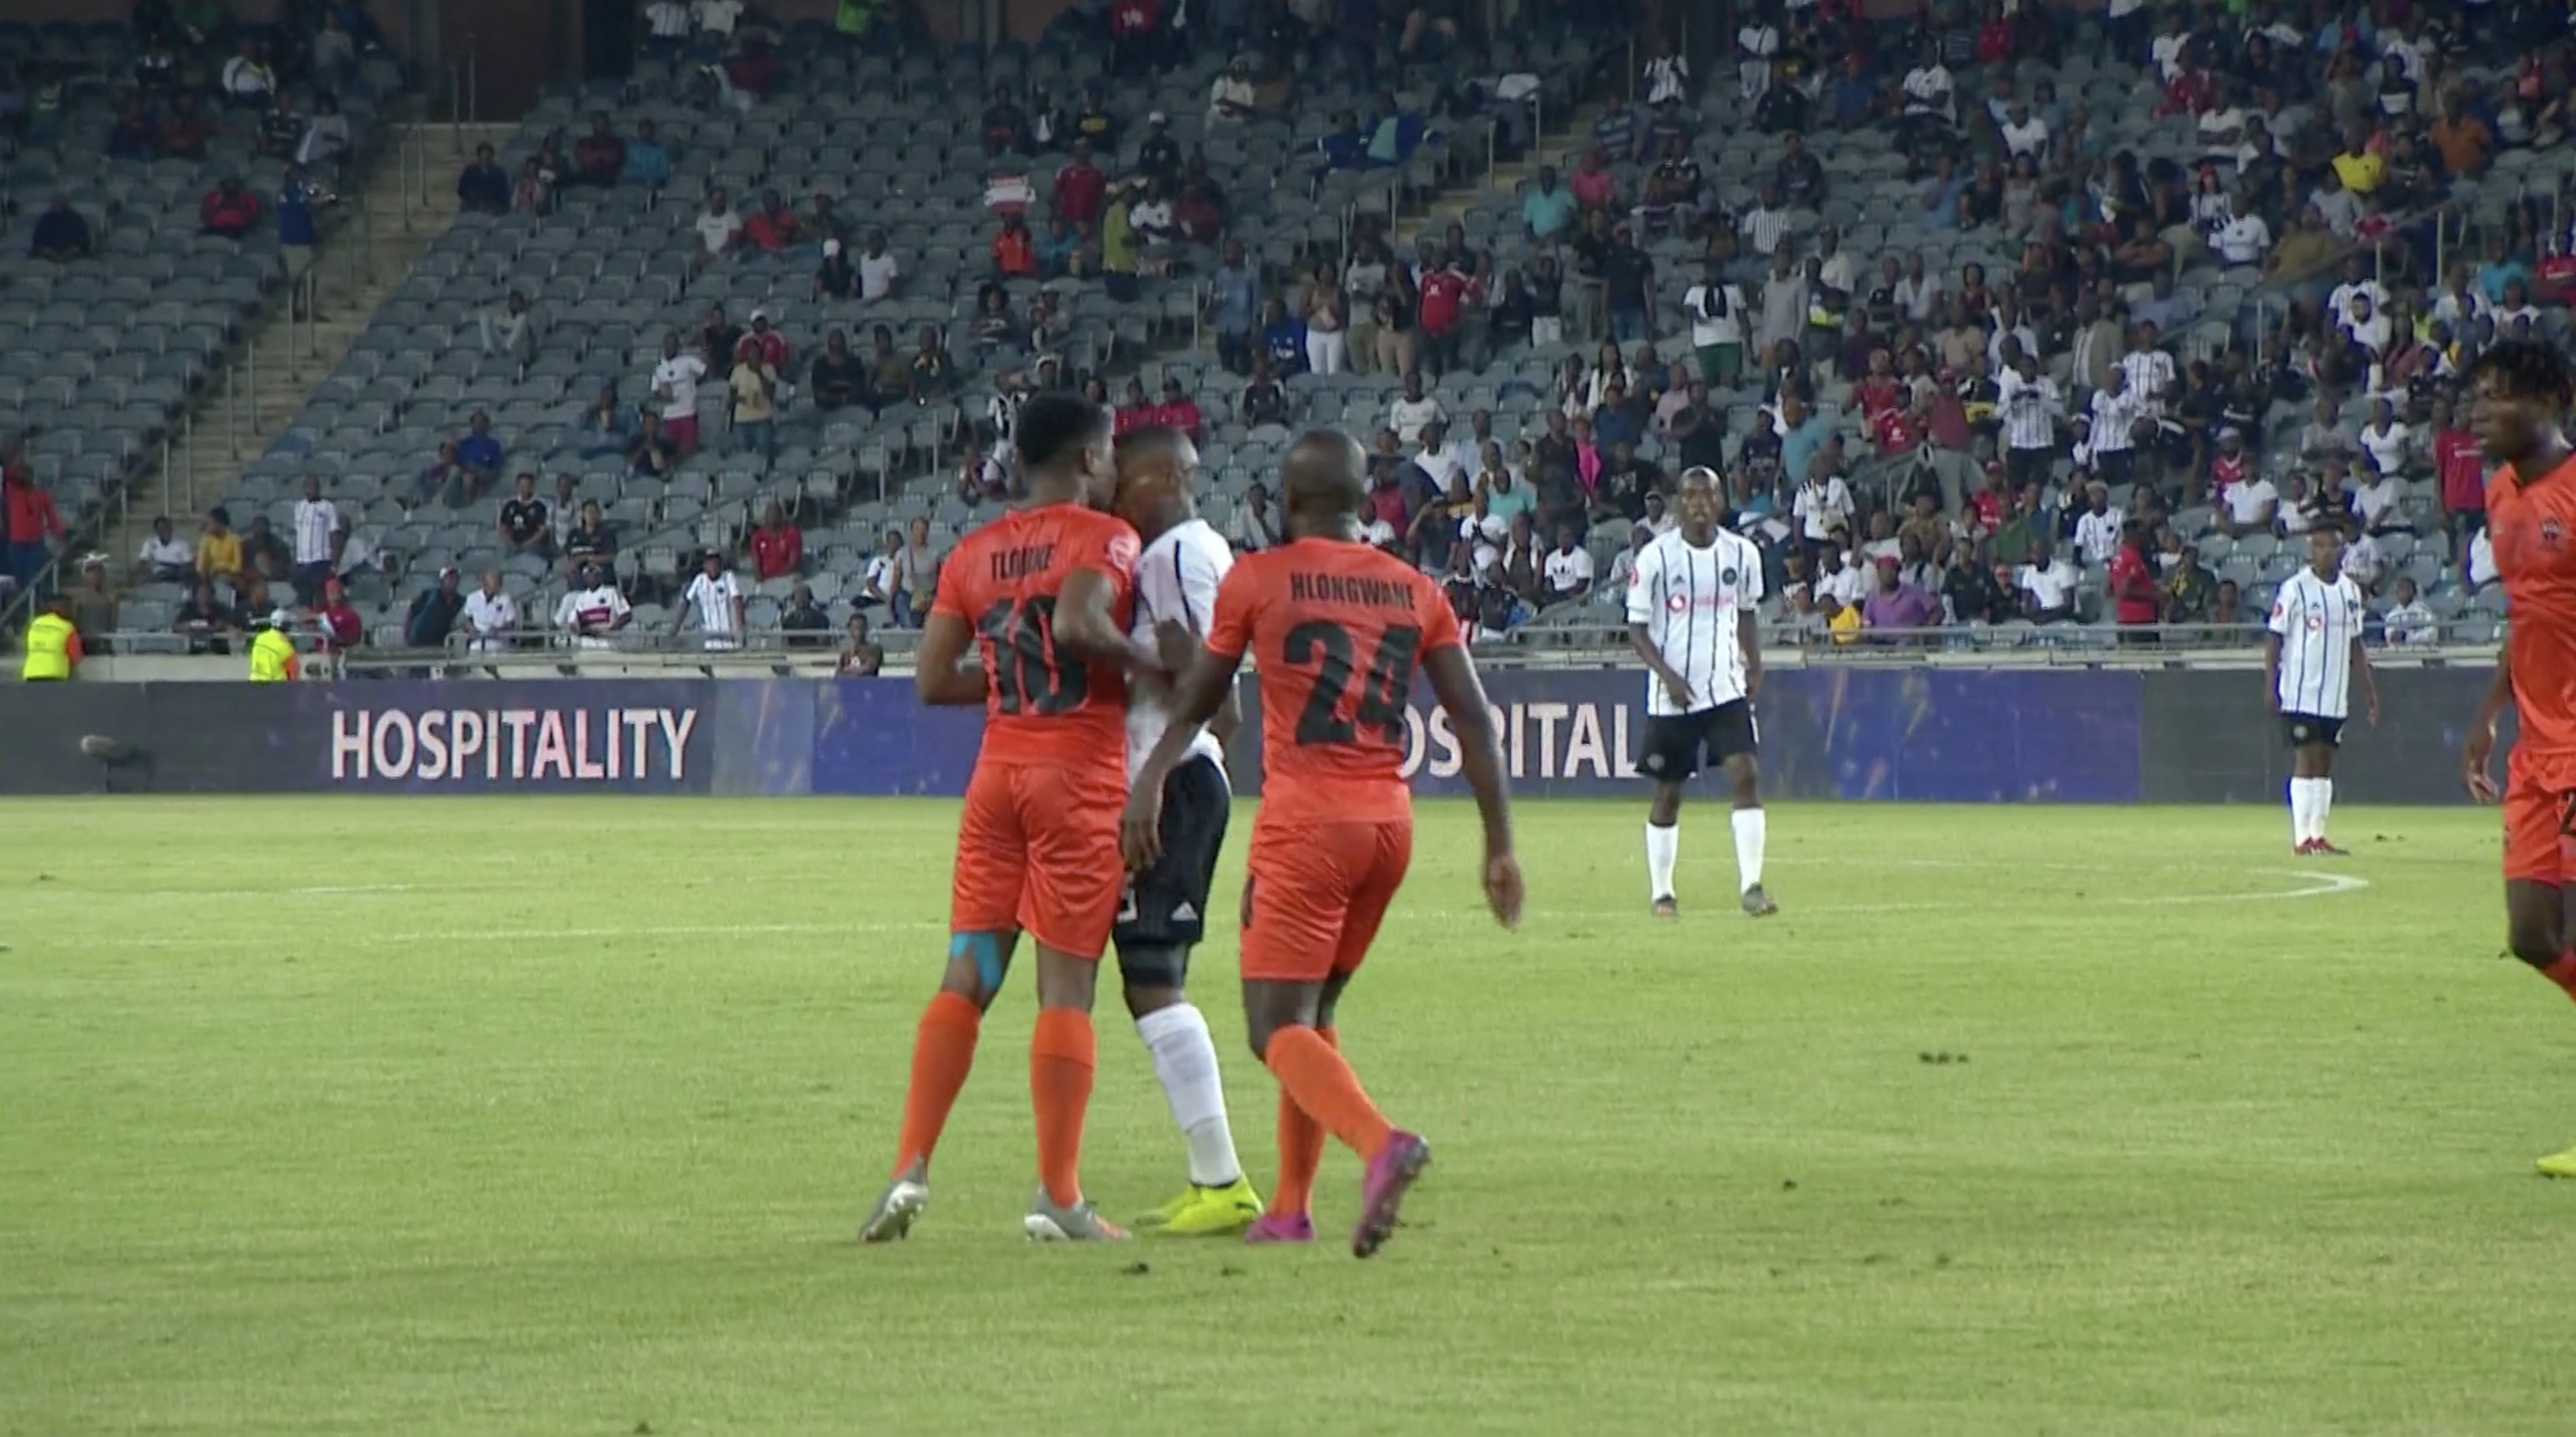 Absa Premiership | Pirates v Polokwane | Match Incident